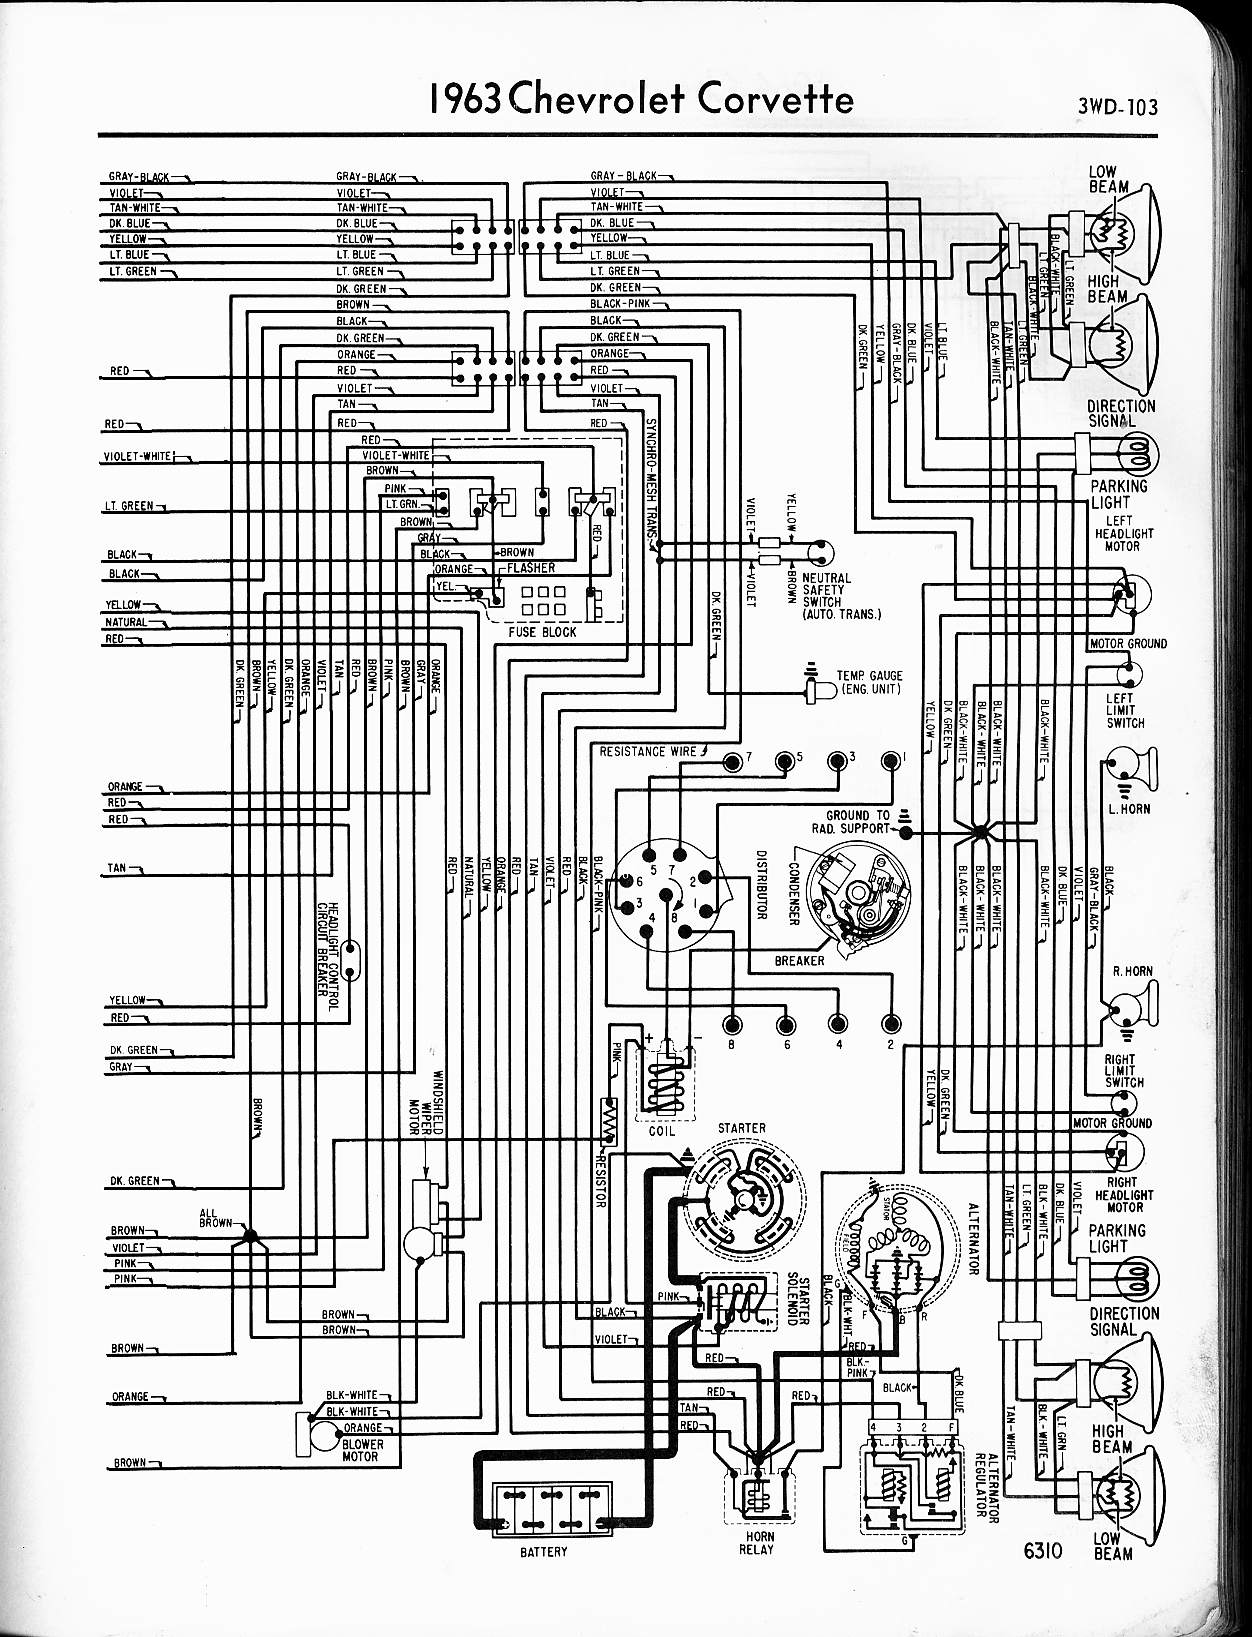 Fuse Box 1960 Chevy Impala Further 1964 Corvette Wiring Diagram In Rh Metroagua Co